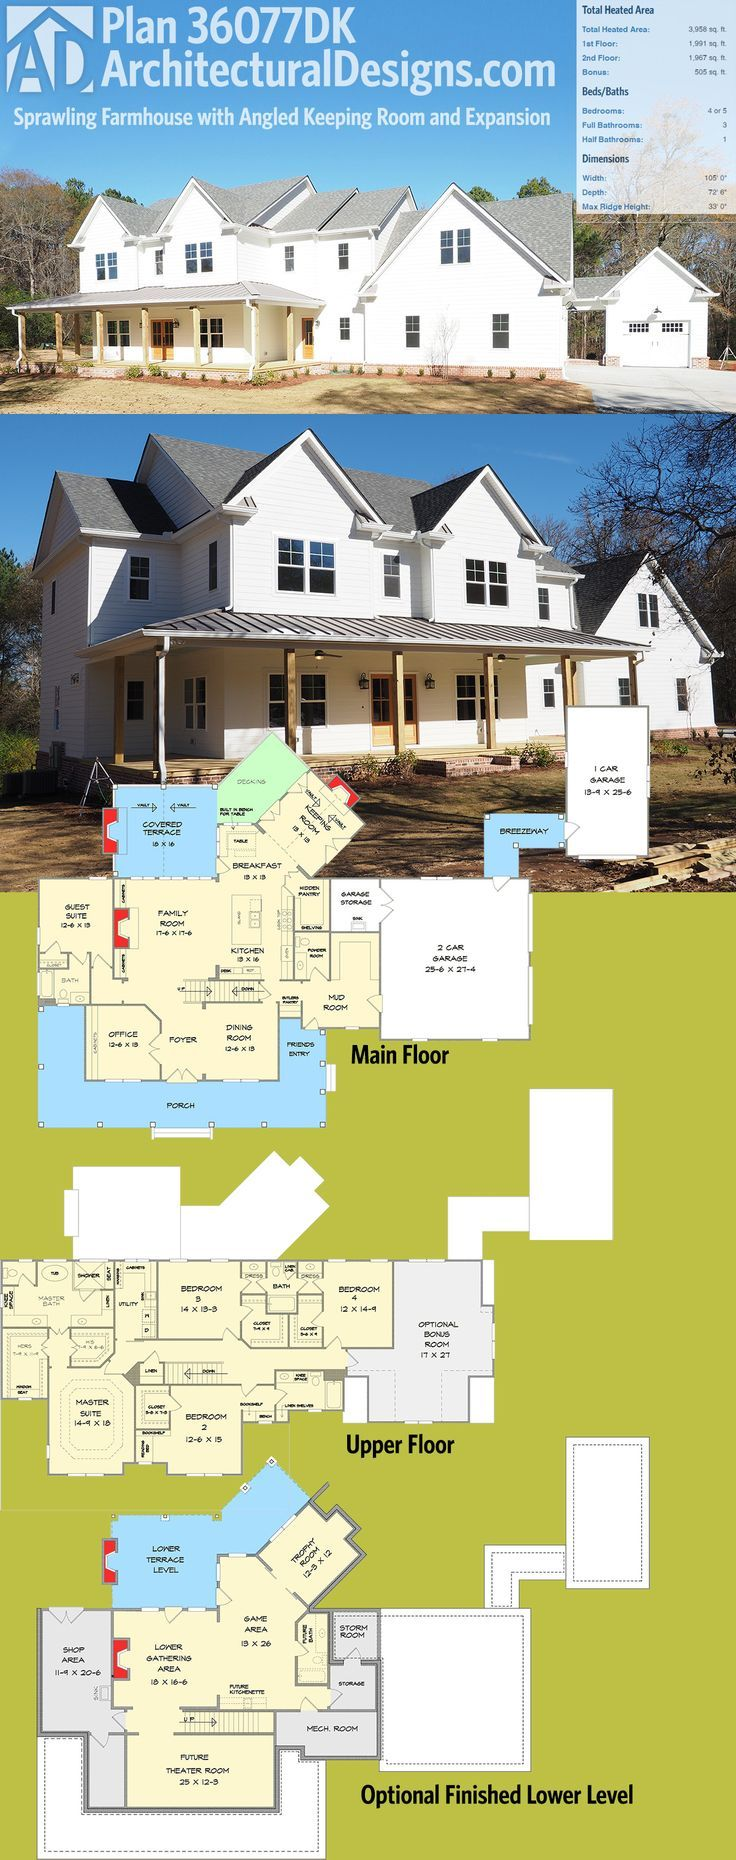 plan 2867j vaulted foyer greeting architectural design house architectural designs house plan 36077dk is a sprawling farmhouse plan with an angled keeping room and